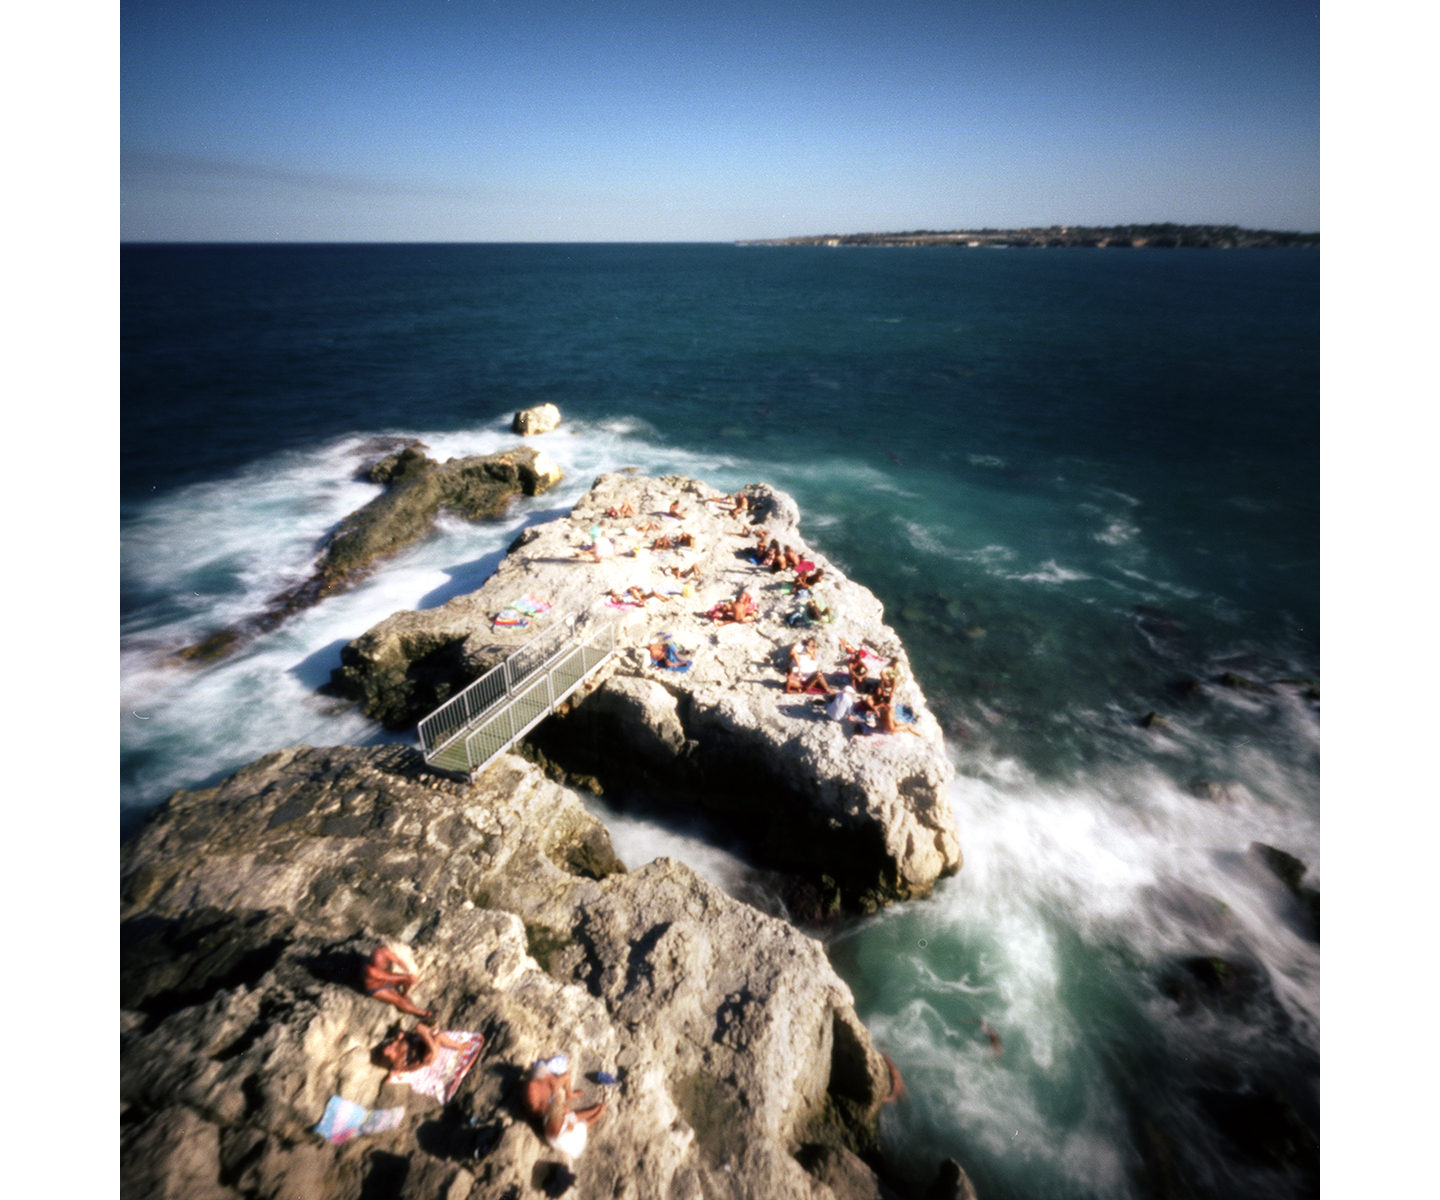 03_Sicily #2 pinhole color